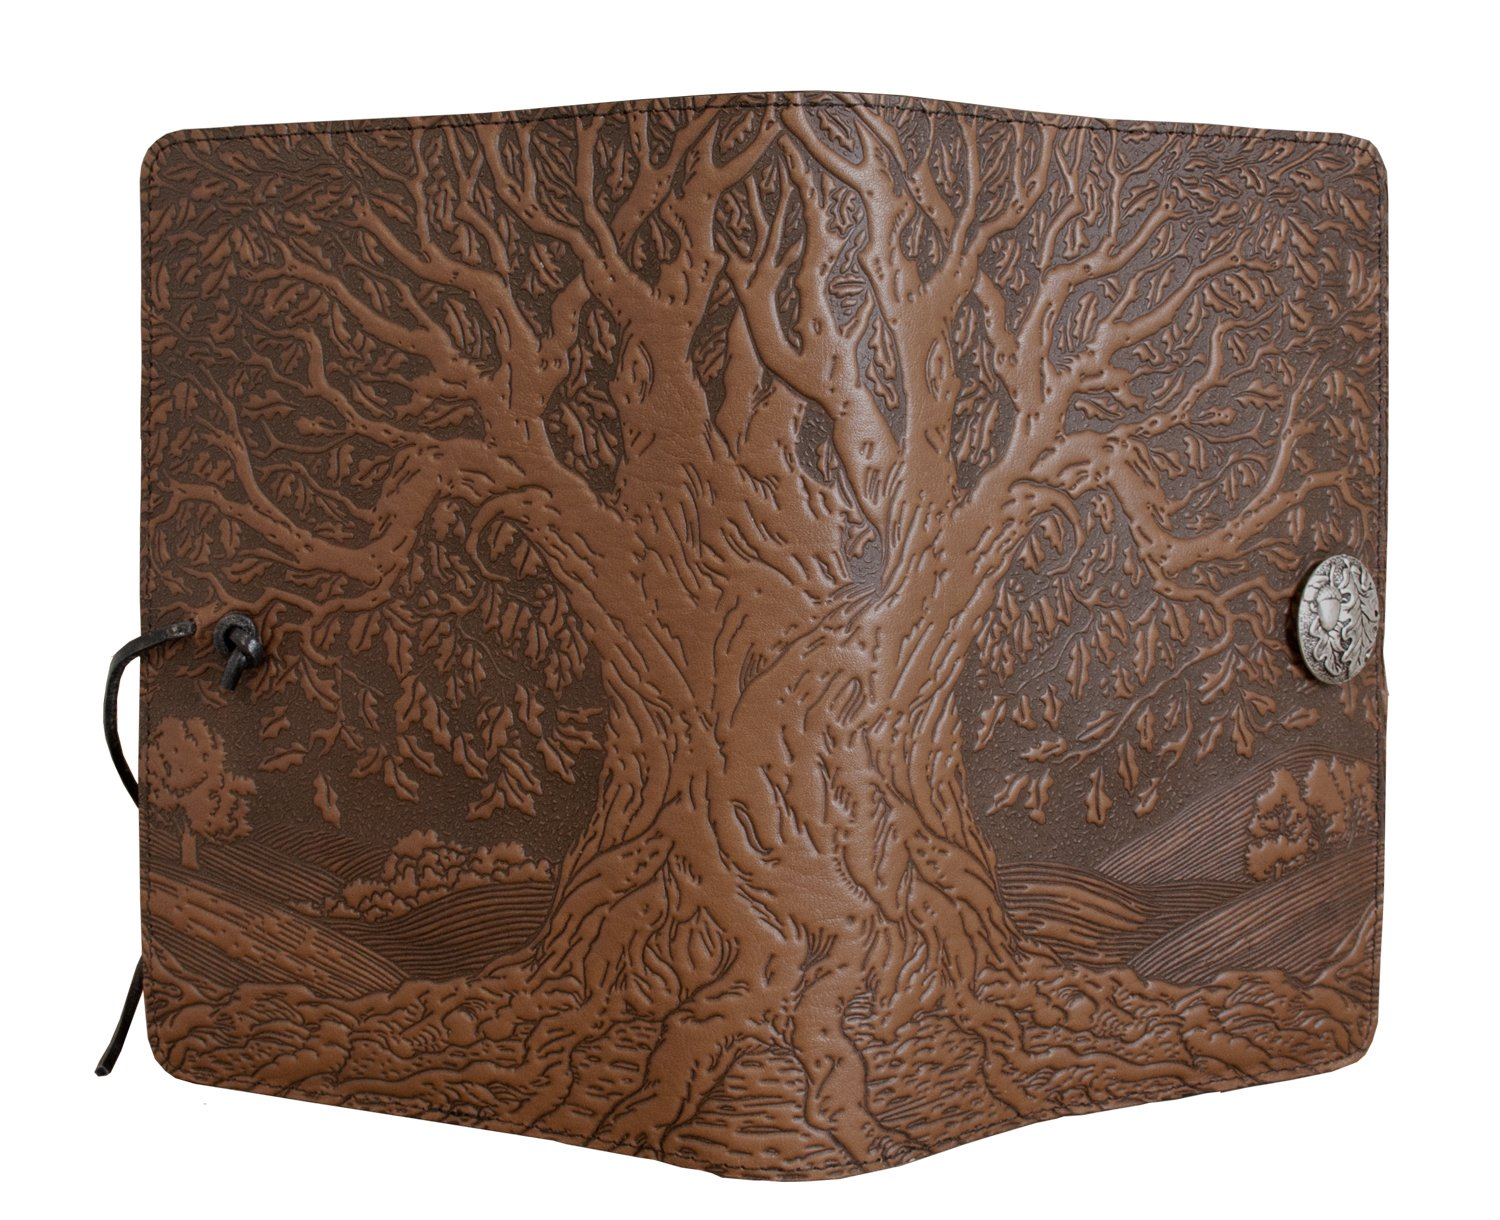 Genuine Leather Refillable Journal Cover with a Hardbound Blank Insert, 6x9 Inches, Tree of Life, Saddle with a Pewter Button, Made in the USA by Oberon Design by Oberon Design (Image #2)